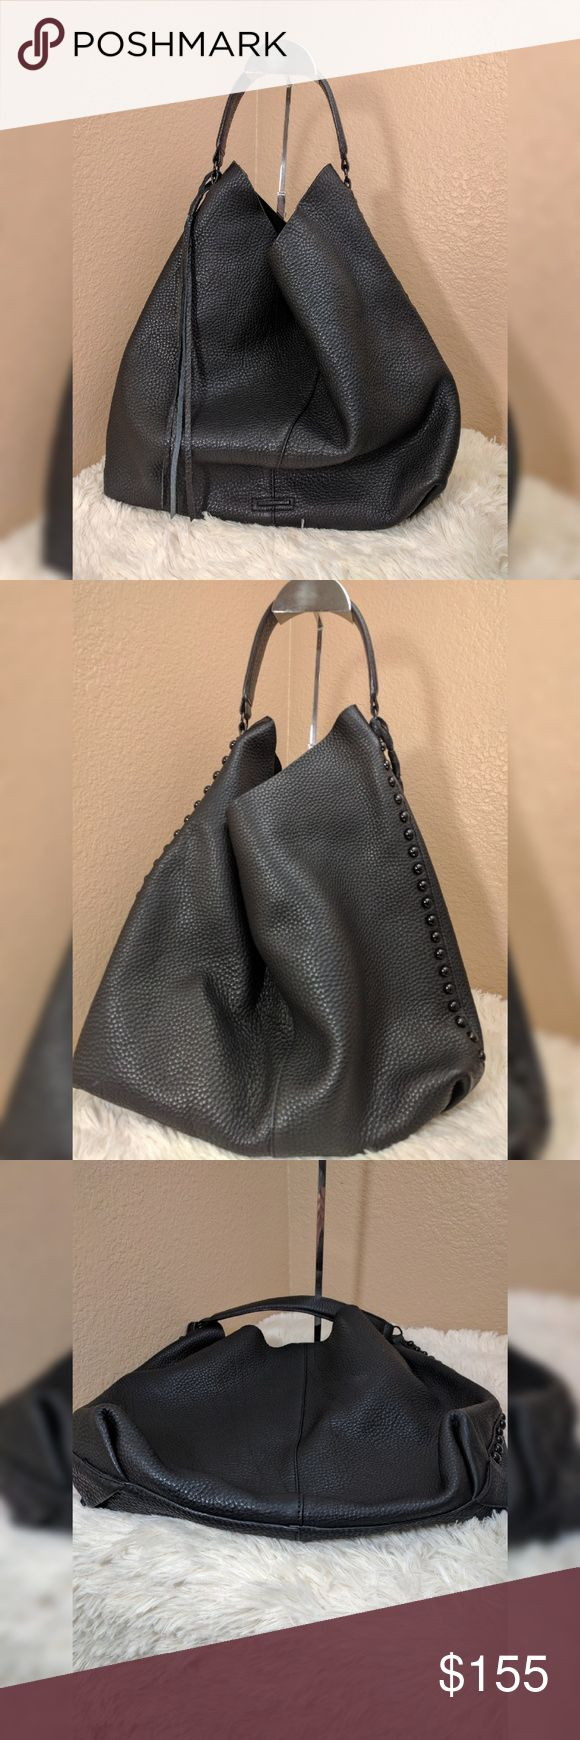 """Rebecca Minkoff Unlined Hobo It's all in the details for this modern hobo from Rebecca Minkoff. Crafted from soft pebbled leather, this wardrobe staple features a slouchy silhouette, a cool metallic interior and just the right amount of studding to make this bag an instant classic.  Magnetic-snap closure.  Removable interior zip pouch.  Unlined.  Leather.  By Rebecca Minkoff;?  Size Info  15""""W x 14""""H x 4 ?""""D. (Interior capacity: large.)  7"""" drop  New without tags, missing inside coin purse…"""